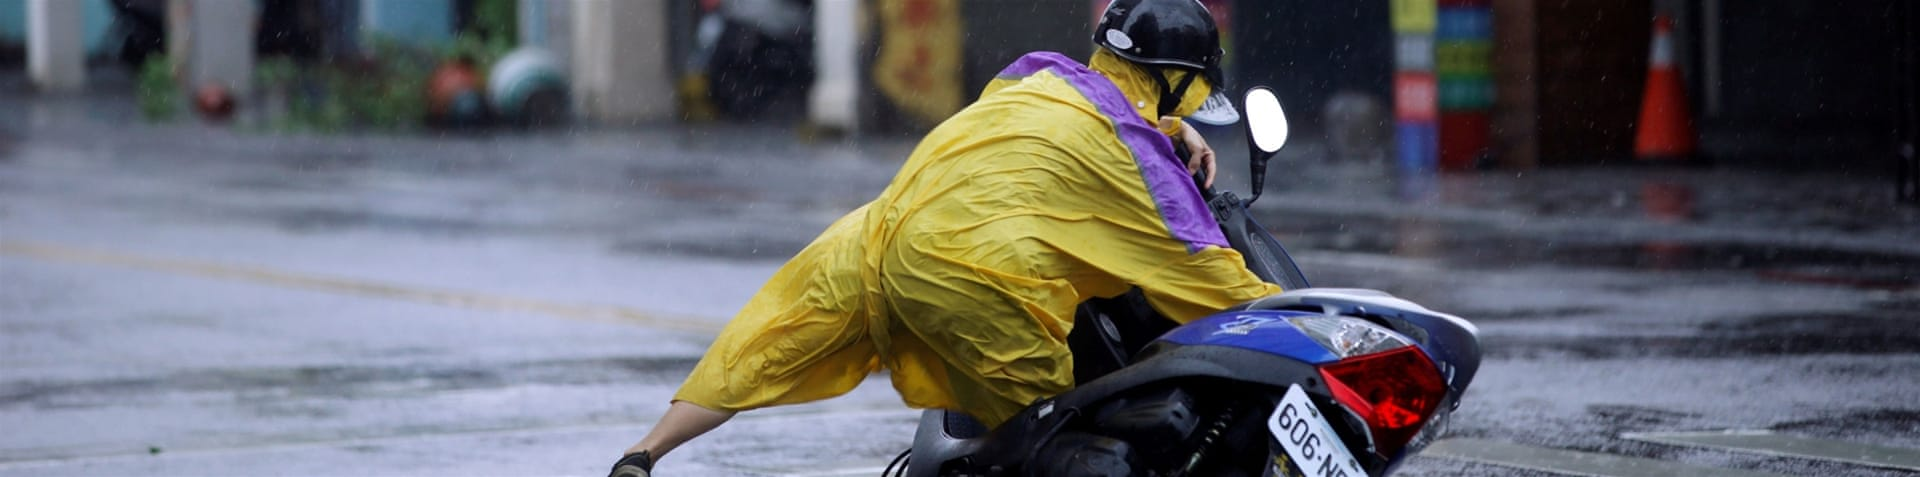 Taipei is swept by wind and rain from Typhoon Megi, passing to the south [AFP]